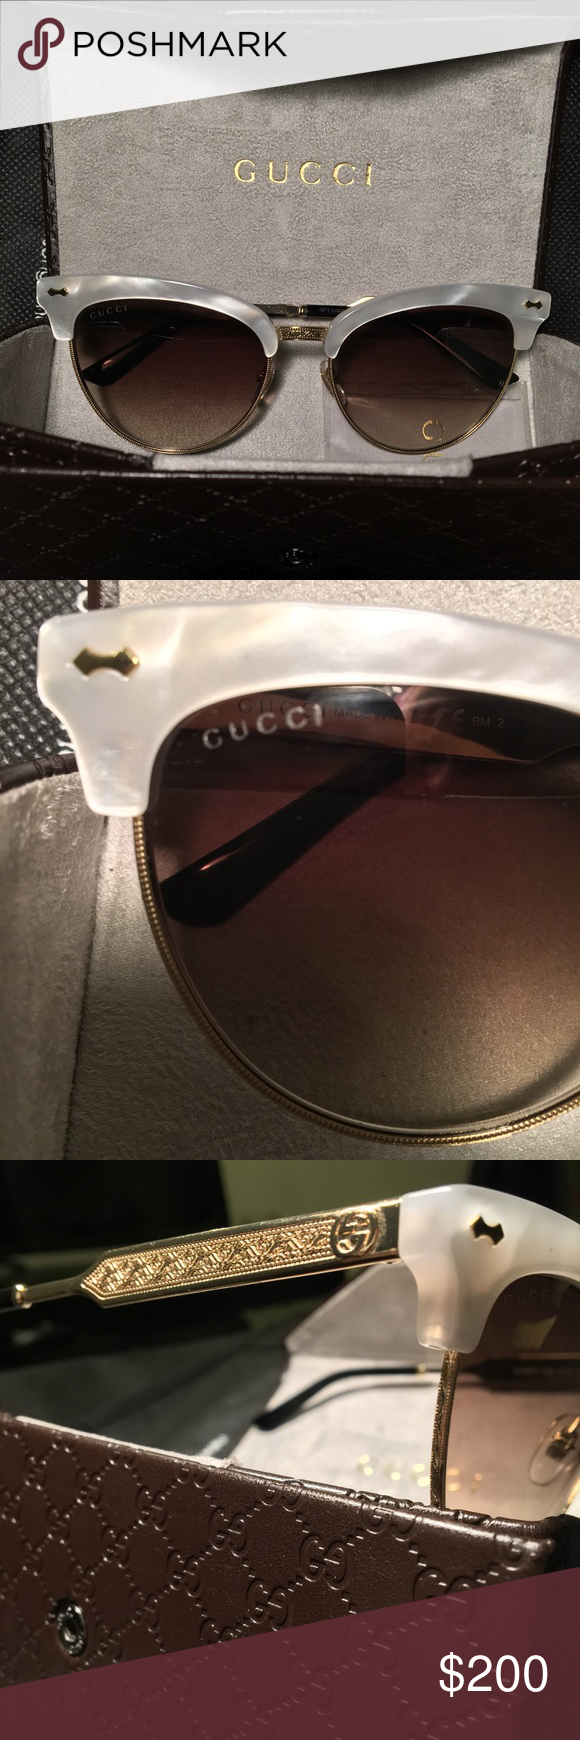 f1a1b940c00 New SUNGLASSES CAT EYE MOTHER OF PEARL   GOLD This fantastic pair of Gucci  sunglasses is